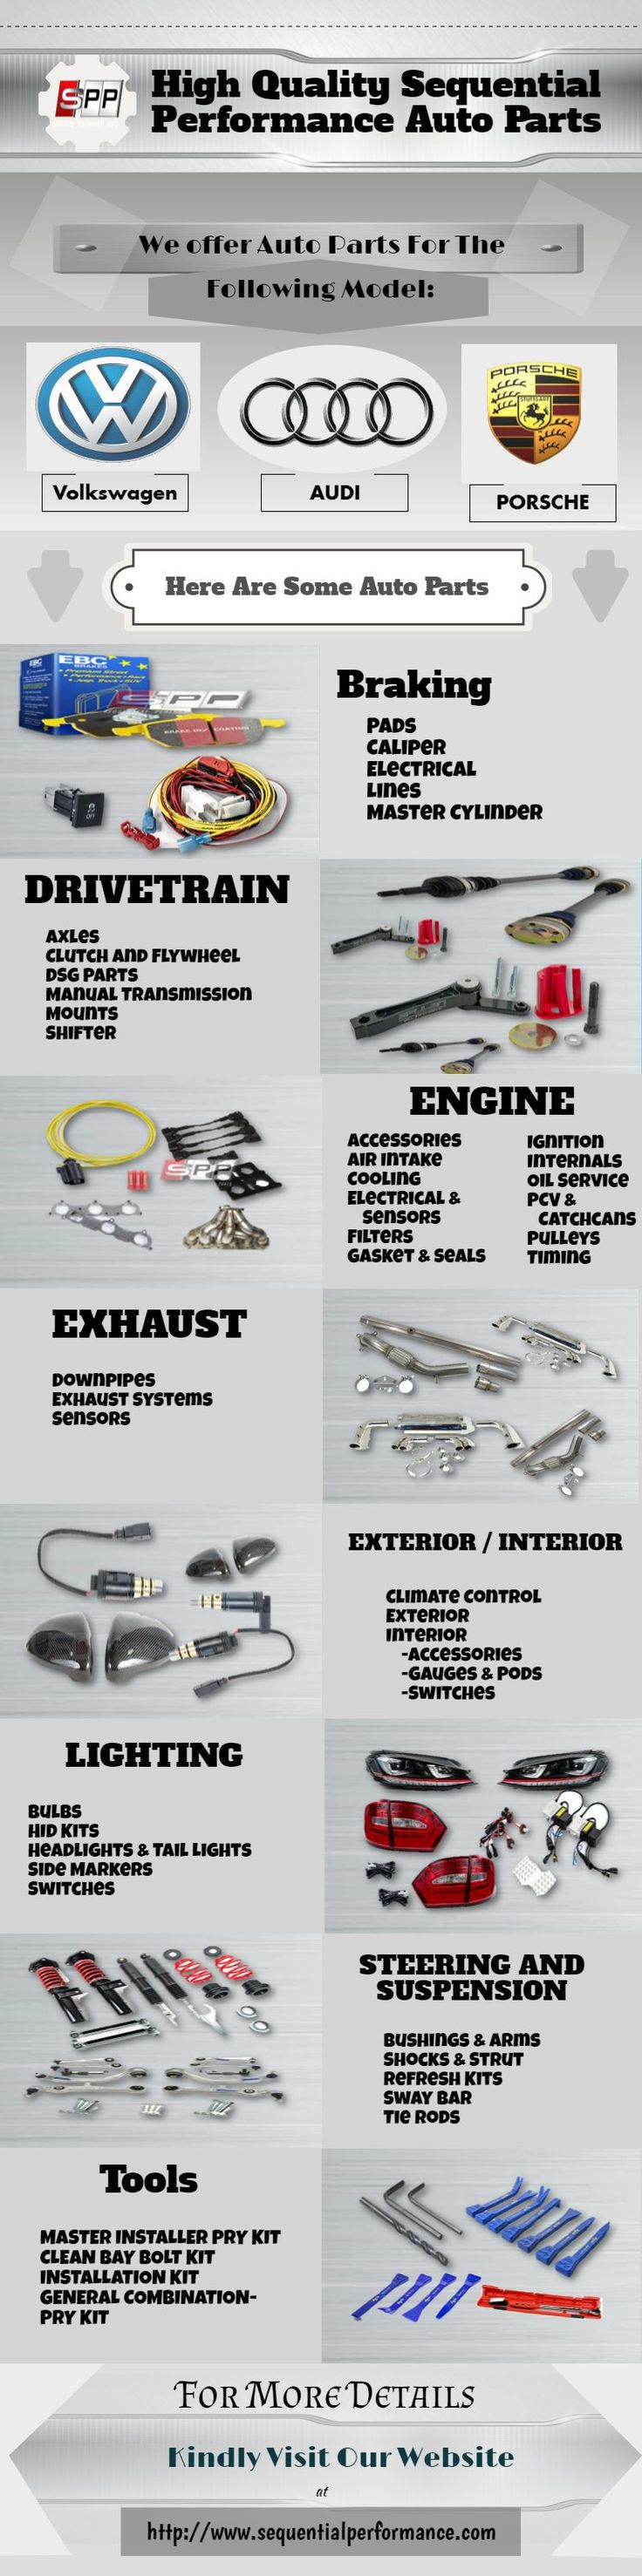 High Quality Sequential Performance Auto Parts http://www.liveinfographic.com/i/high-quality-sequential-performance-auto-parts/ Tags: #infographic  #infographics #popular #pinterest #pinterestinfographics